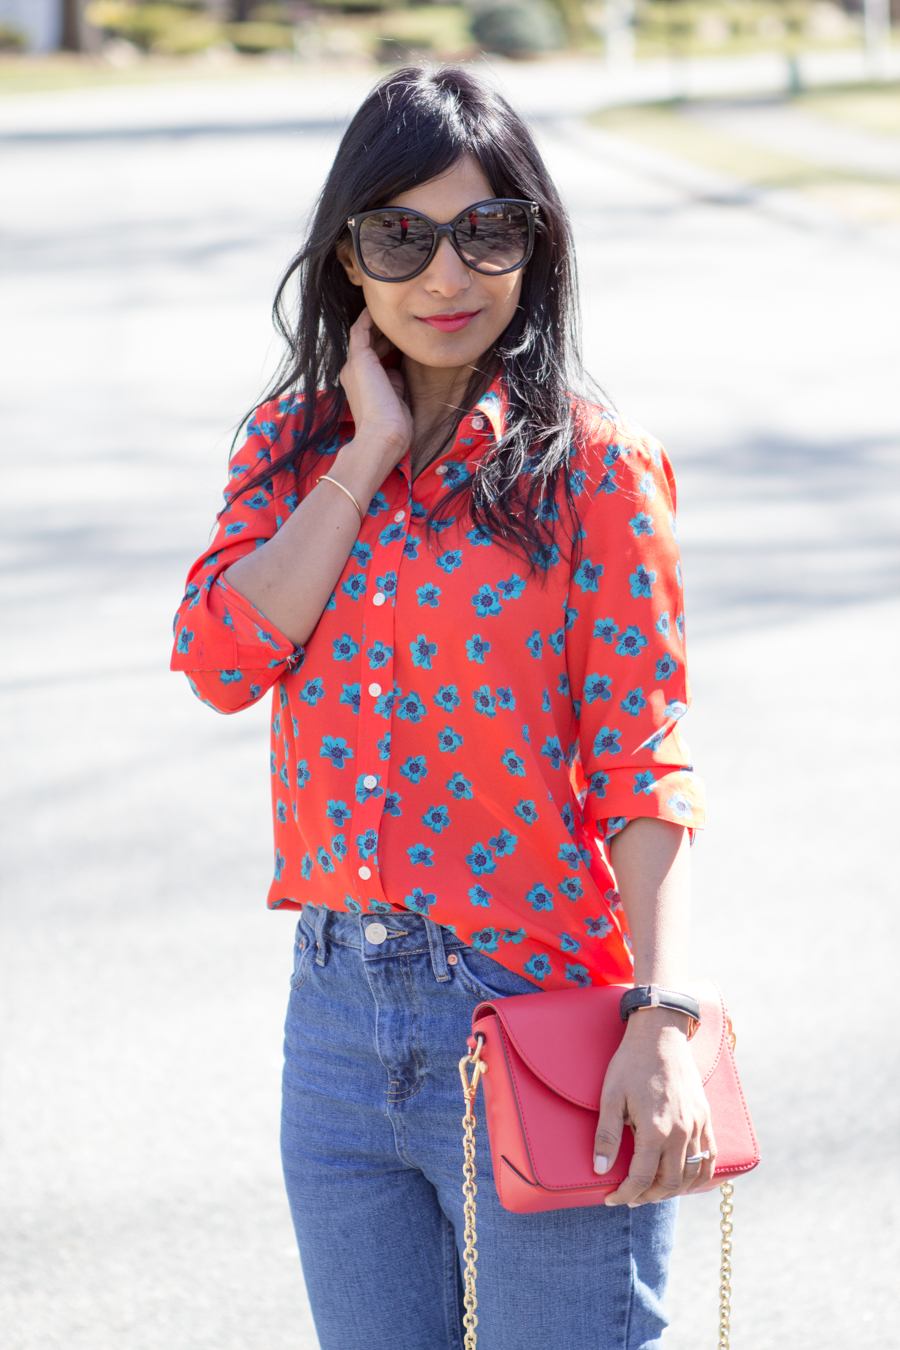 spring colors, spring outfit, bright colors, saturated colors, spring style, colorblocking, lipstick red, tomato red, periwinkle blue, pastel blue, crossbody bag